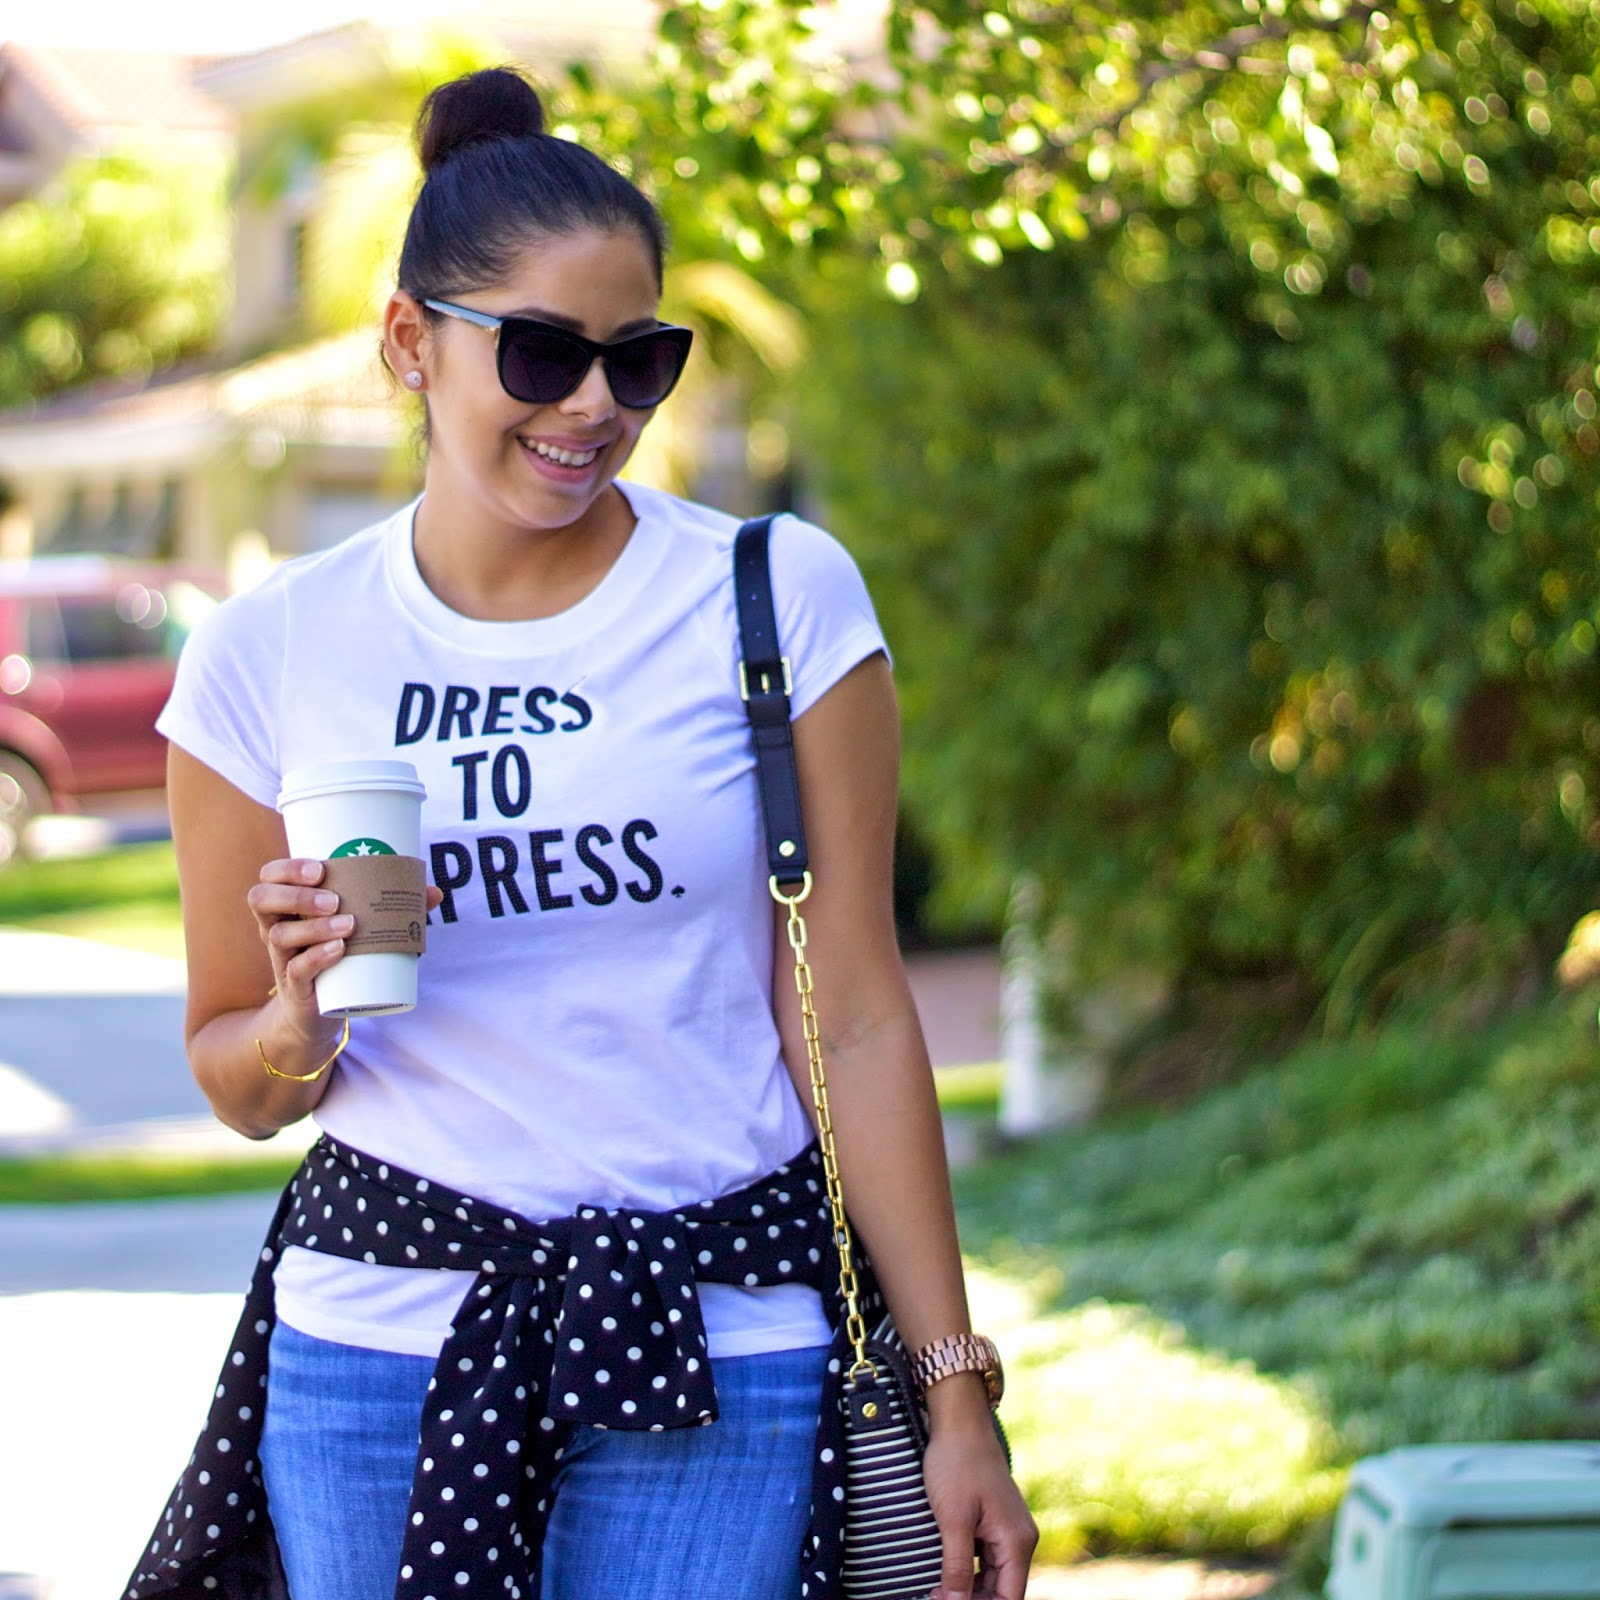 coffee date outfit, dress to impress t shirt, t shirt dressed up, how to dress up a t shirt